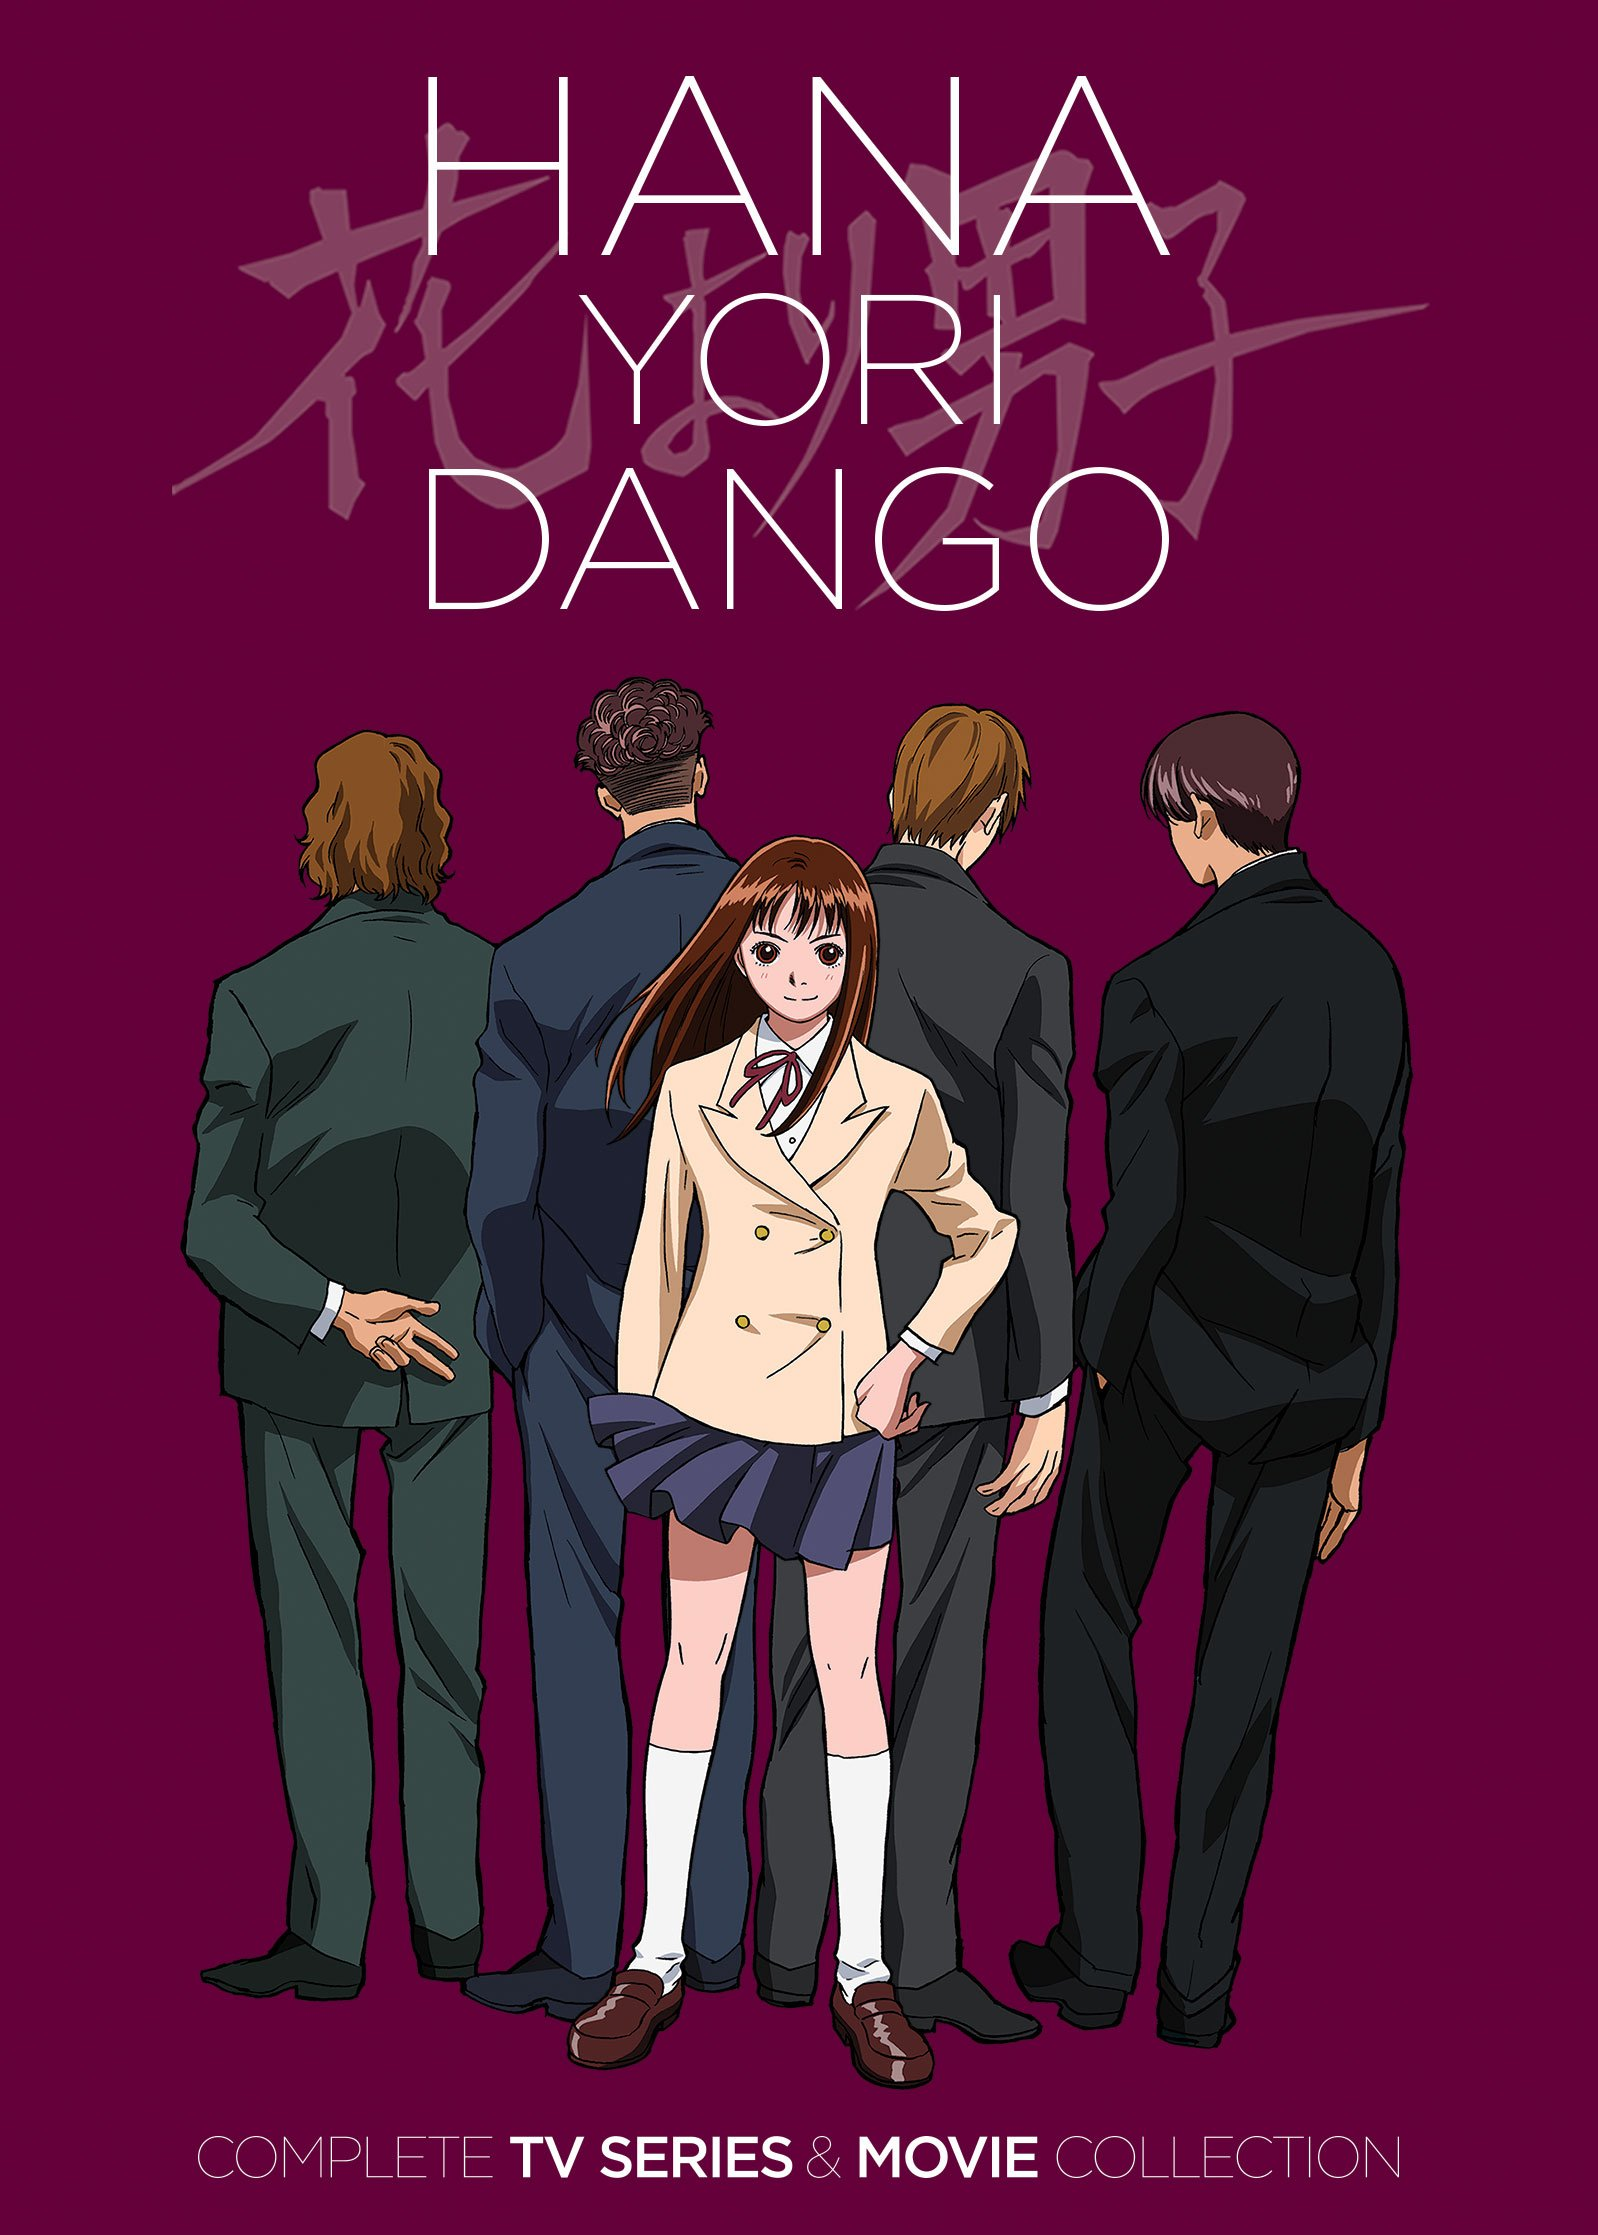 DVD : Hana Yori Dango Anime TV Series and Movie - Hana Yori Dango Anime Tv Series And Movie (7PC)